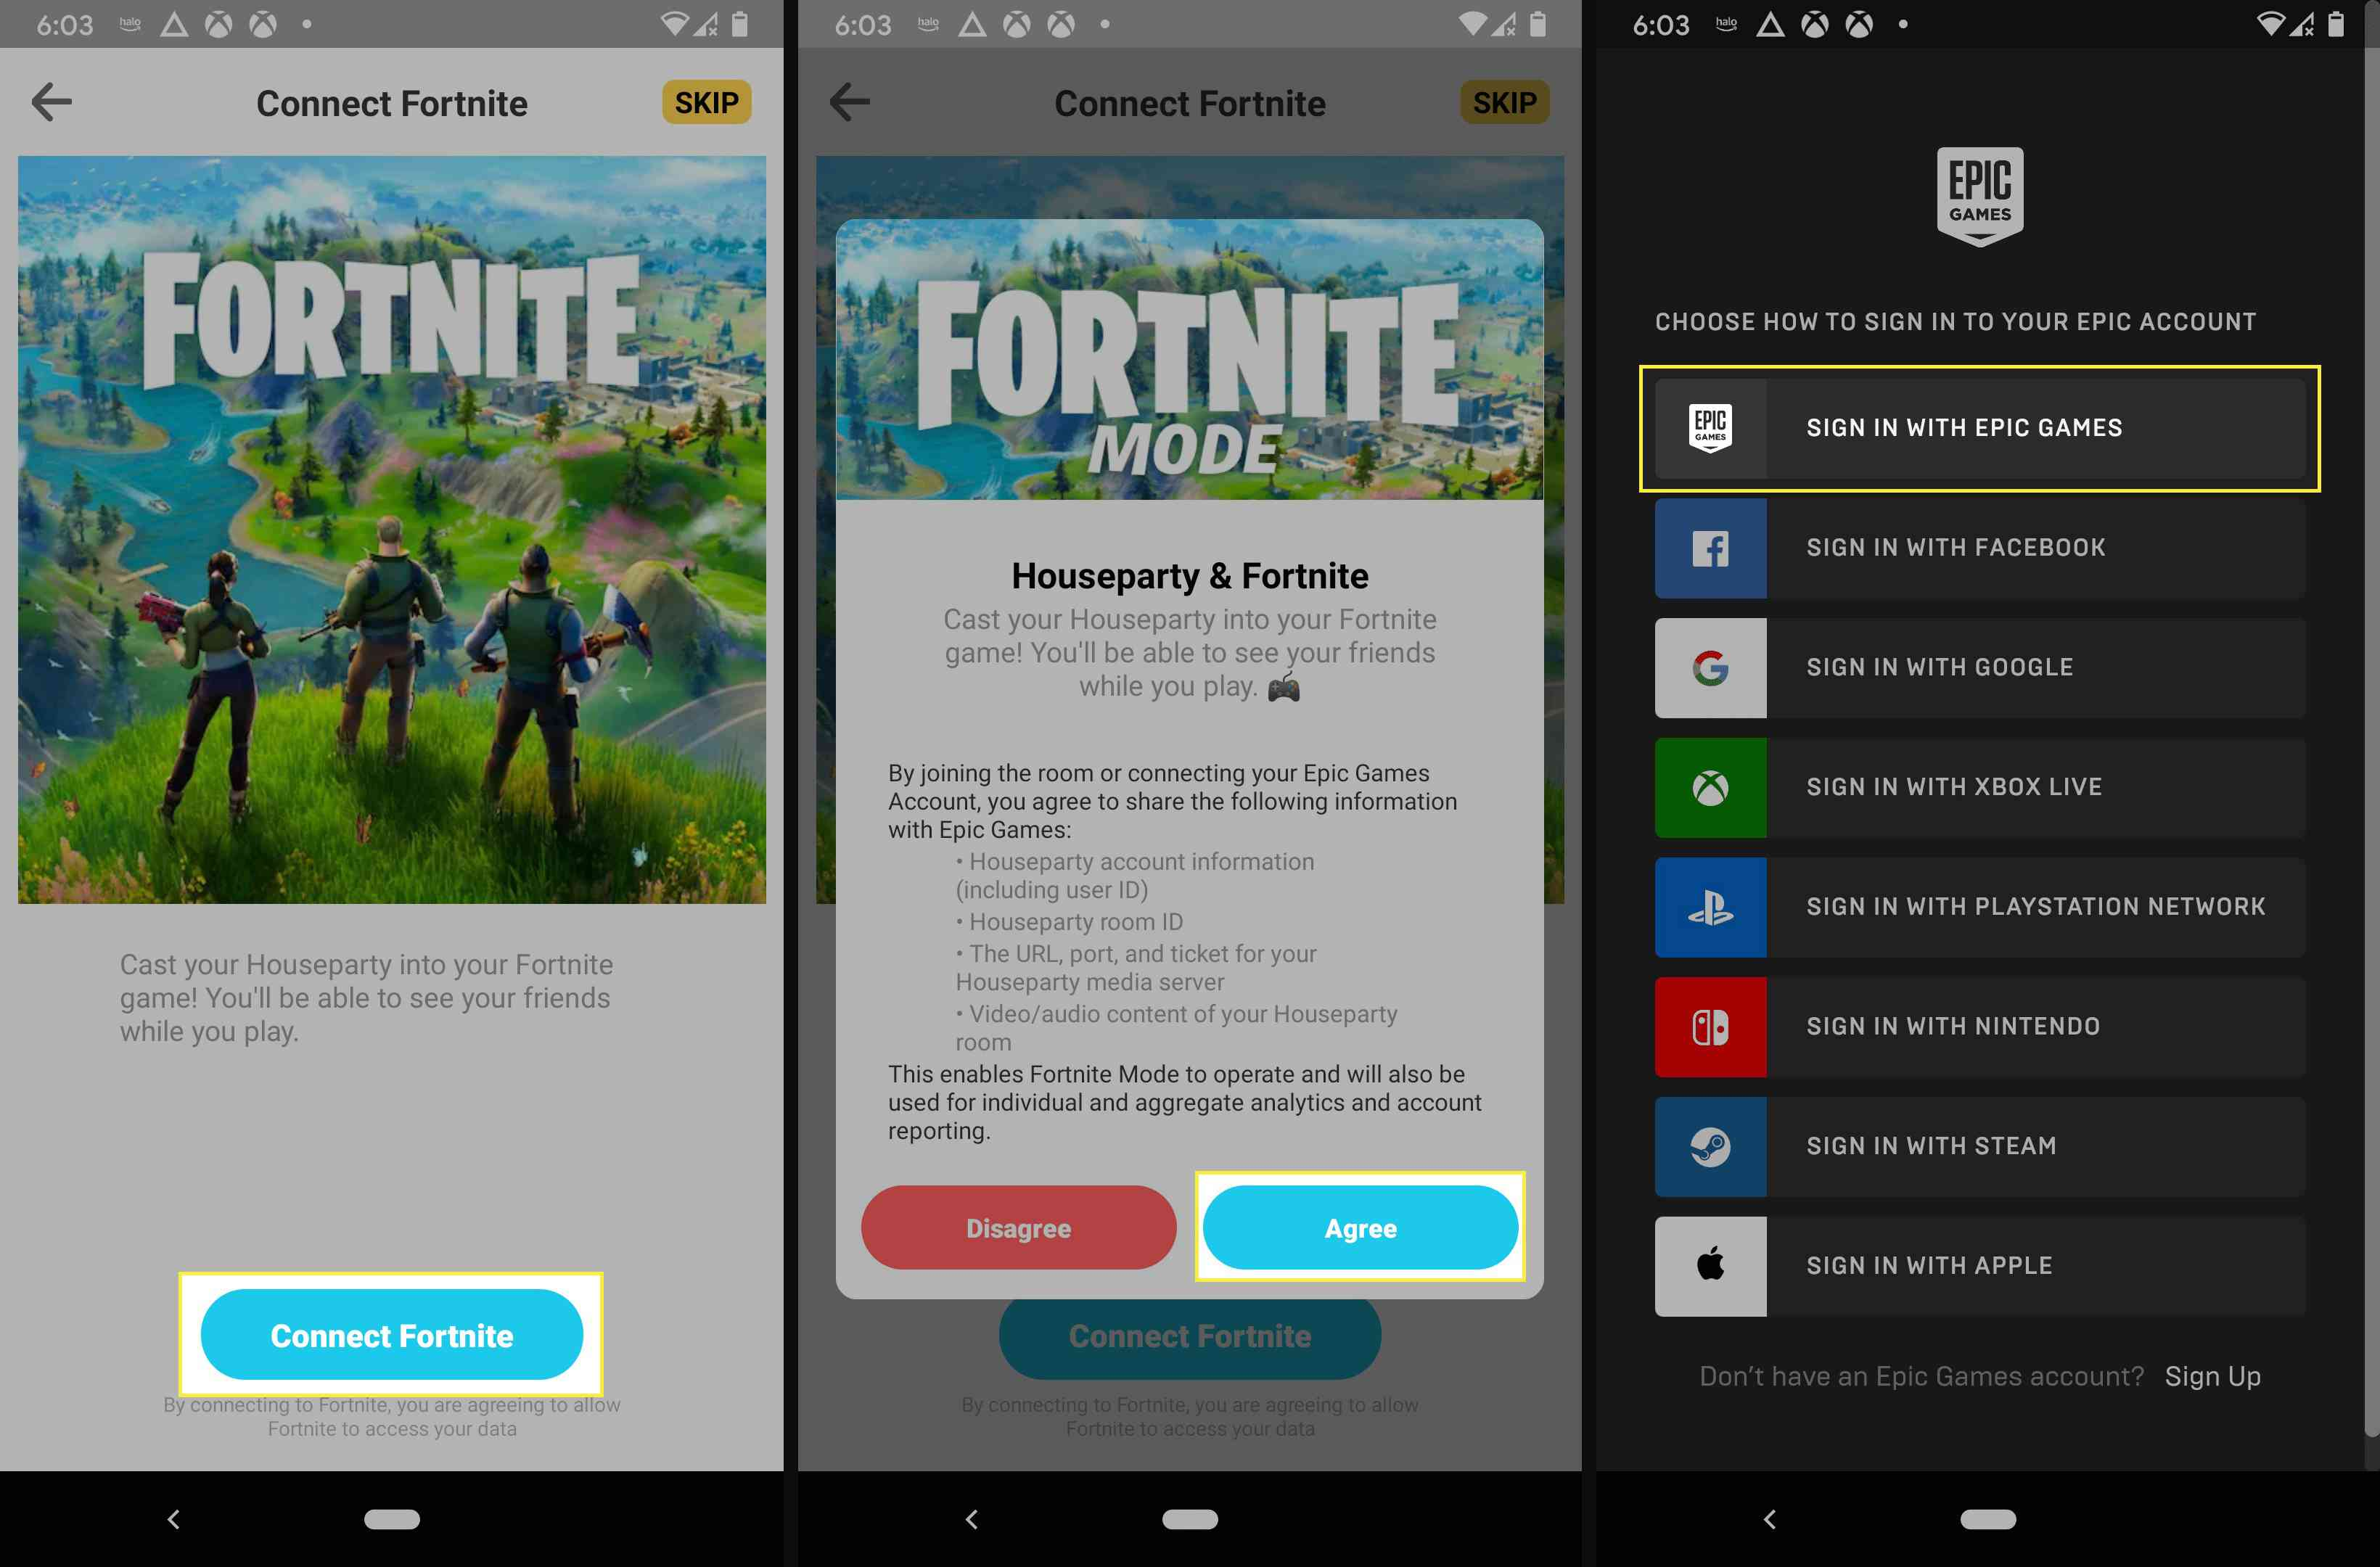 Connecting Fornite to Houseparty with your Epic Games account.